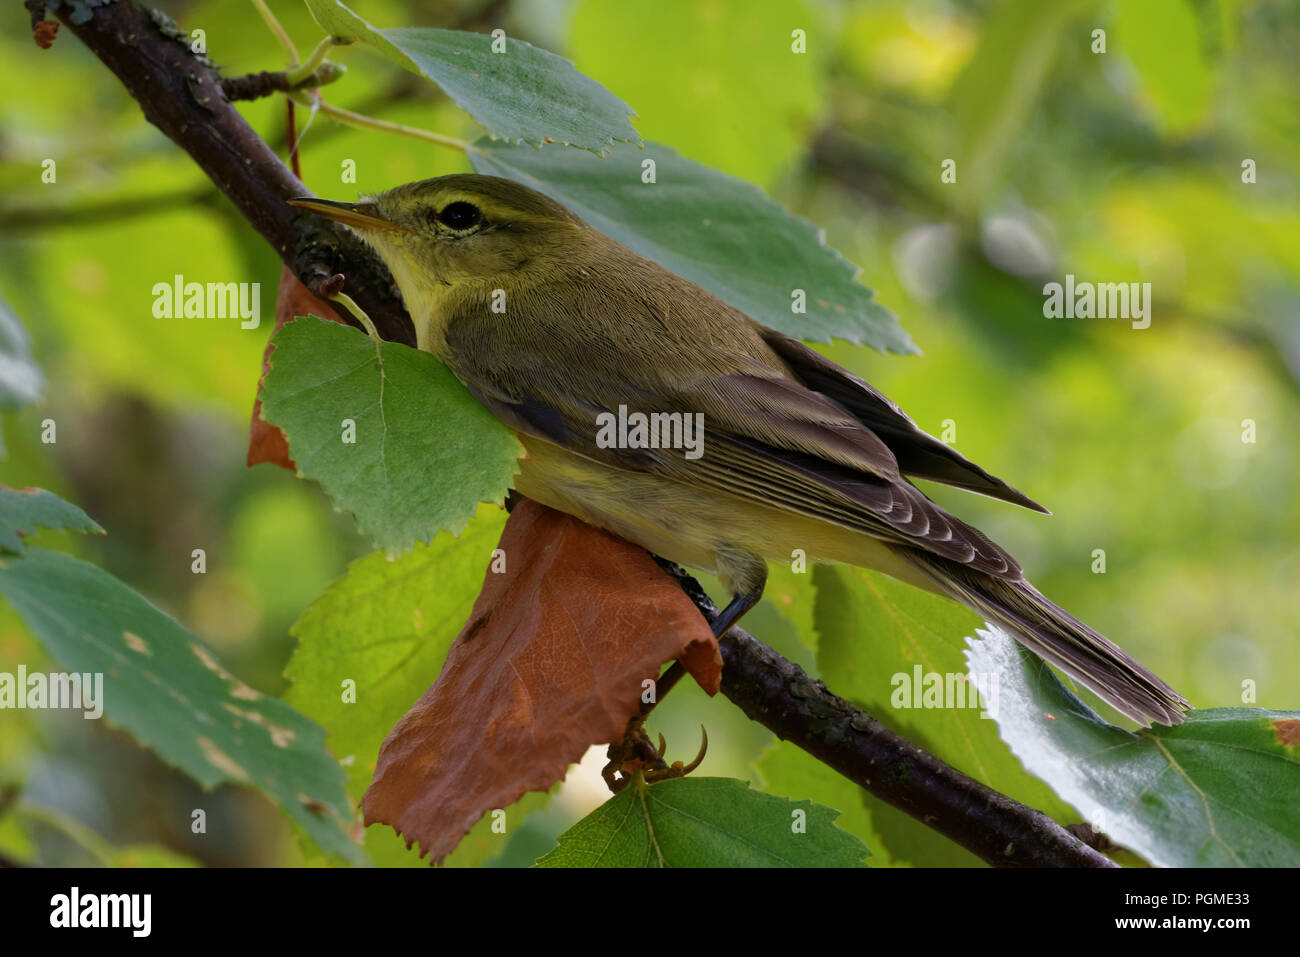 Willow warbler (Phylloscopus trochilus) is a very common and widespread leaf warbler which breeds throughout northern and temperate Europe and Asia Stock Photo